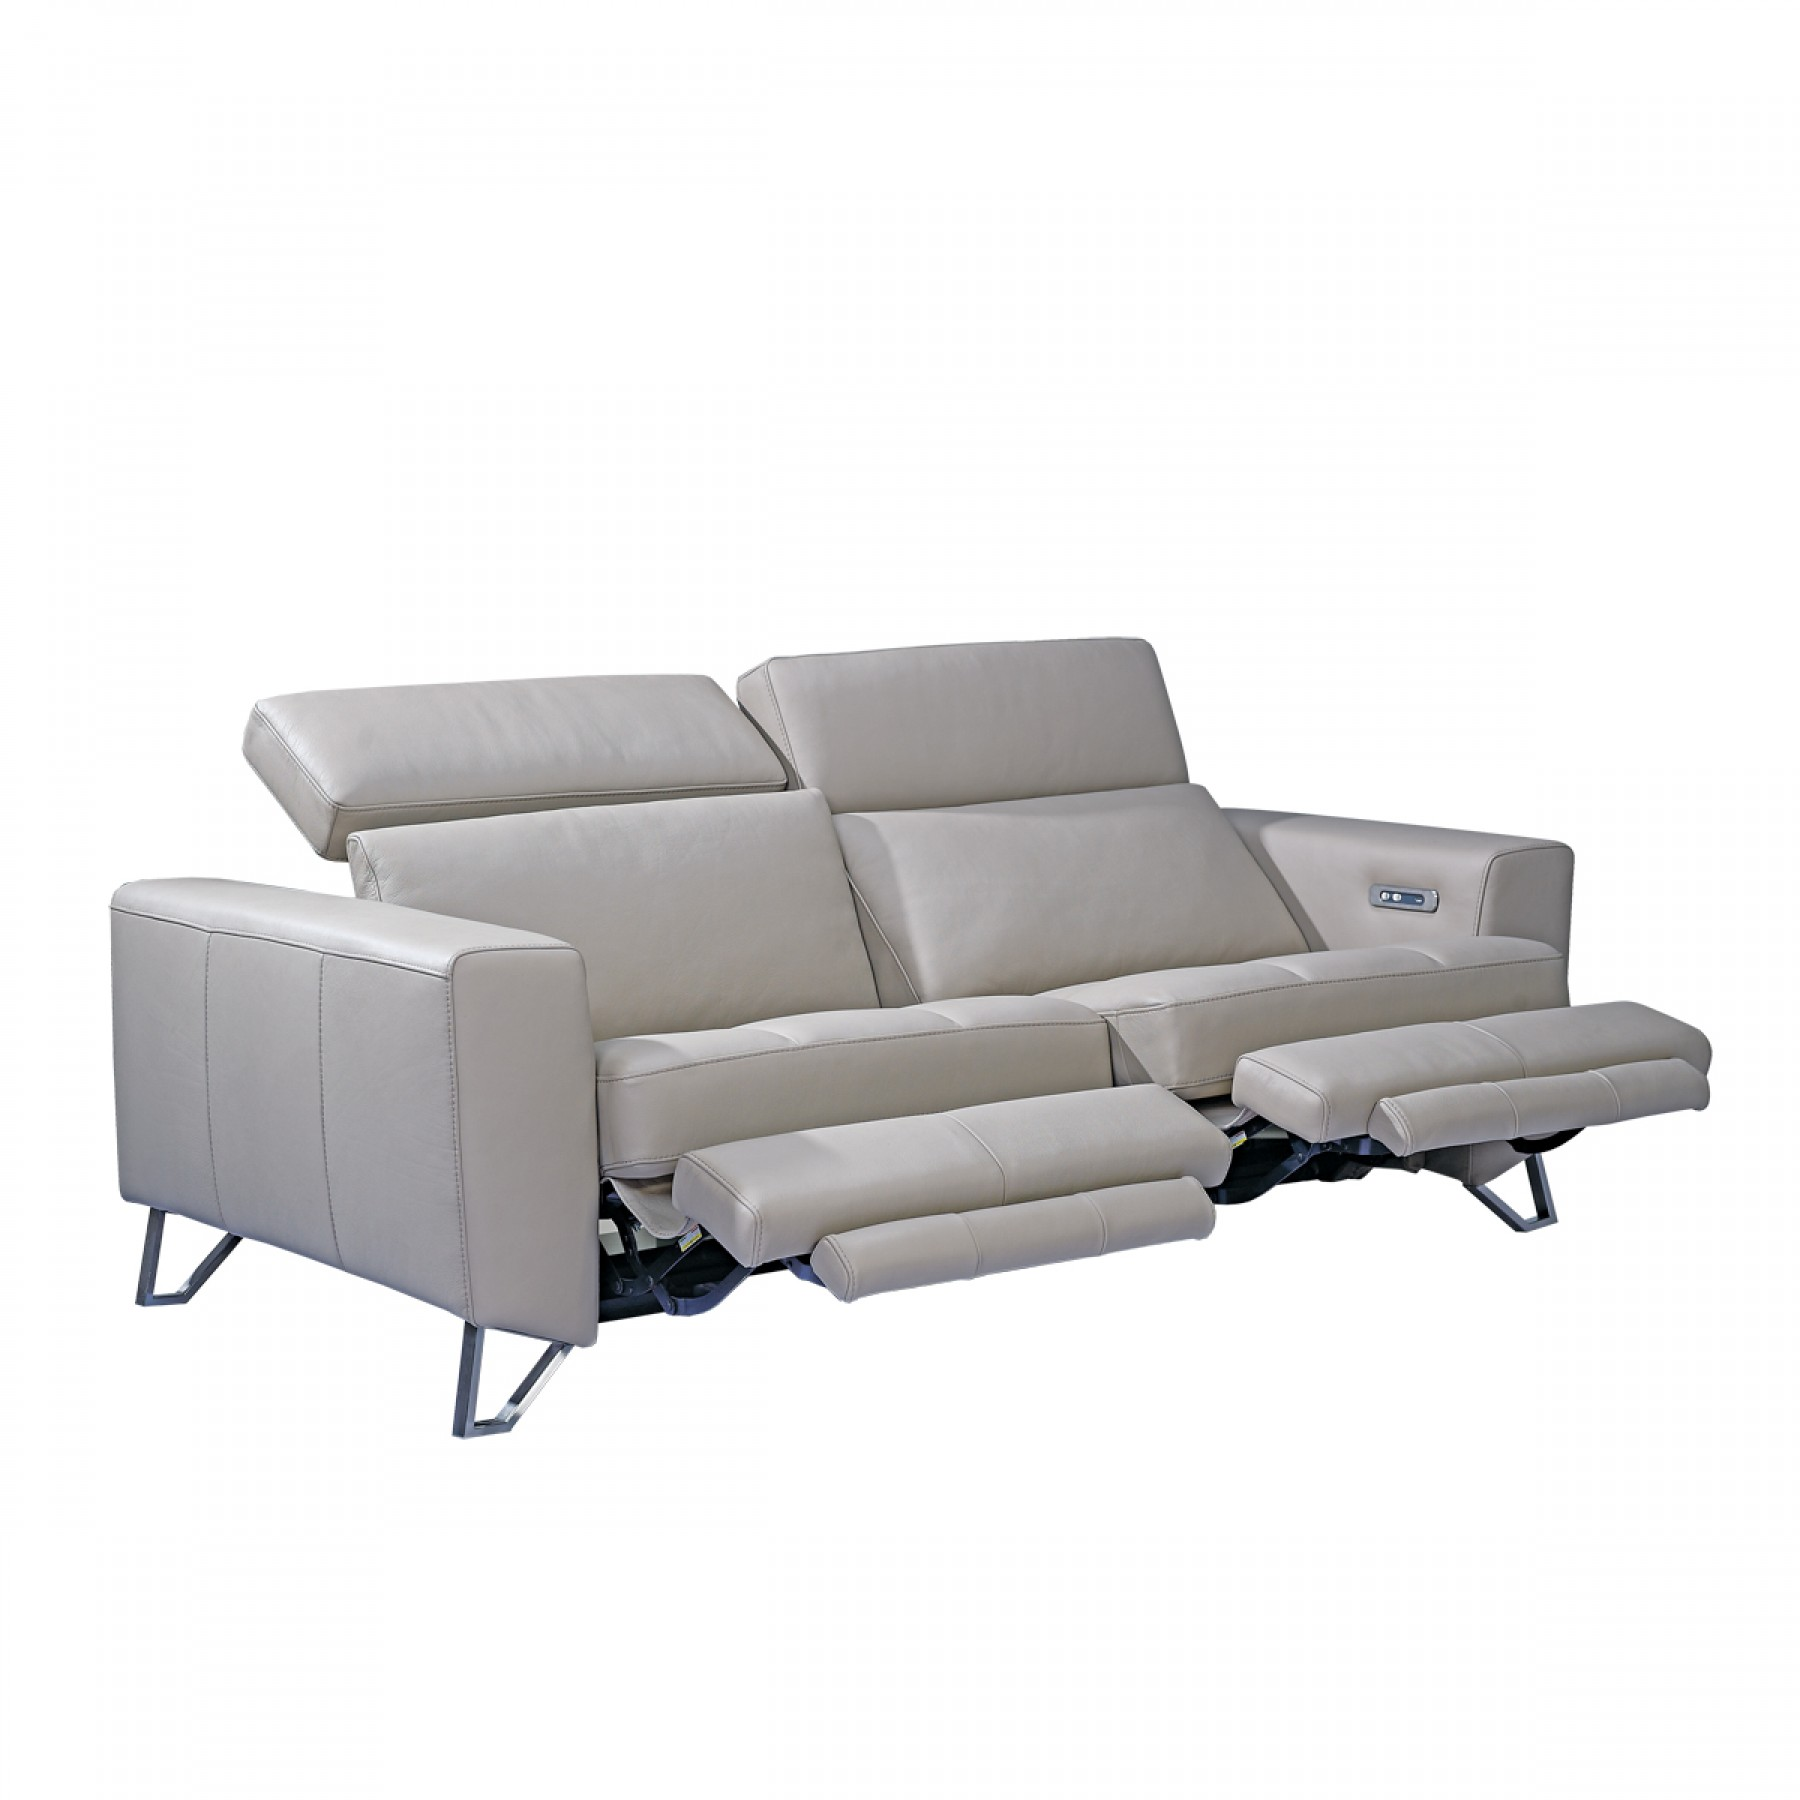 aperto 3 seater recliner sofa beyond furniture. Black Bedroom Furniture Sets. Home Design Ideas